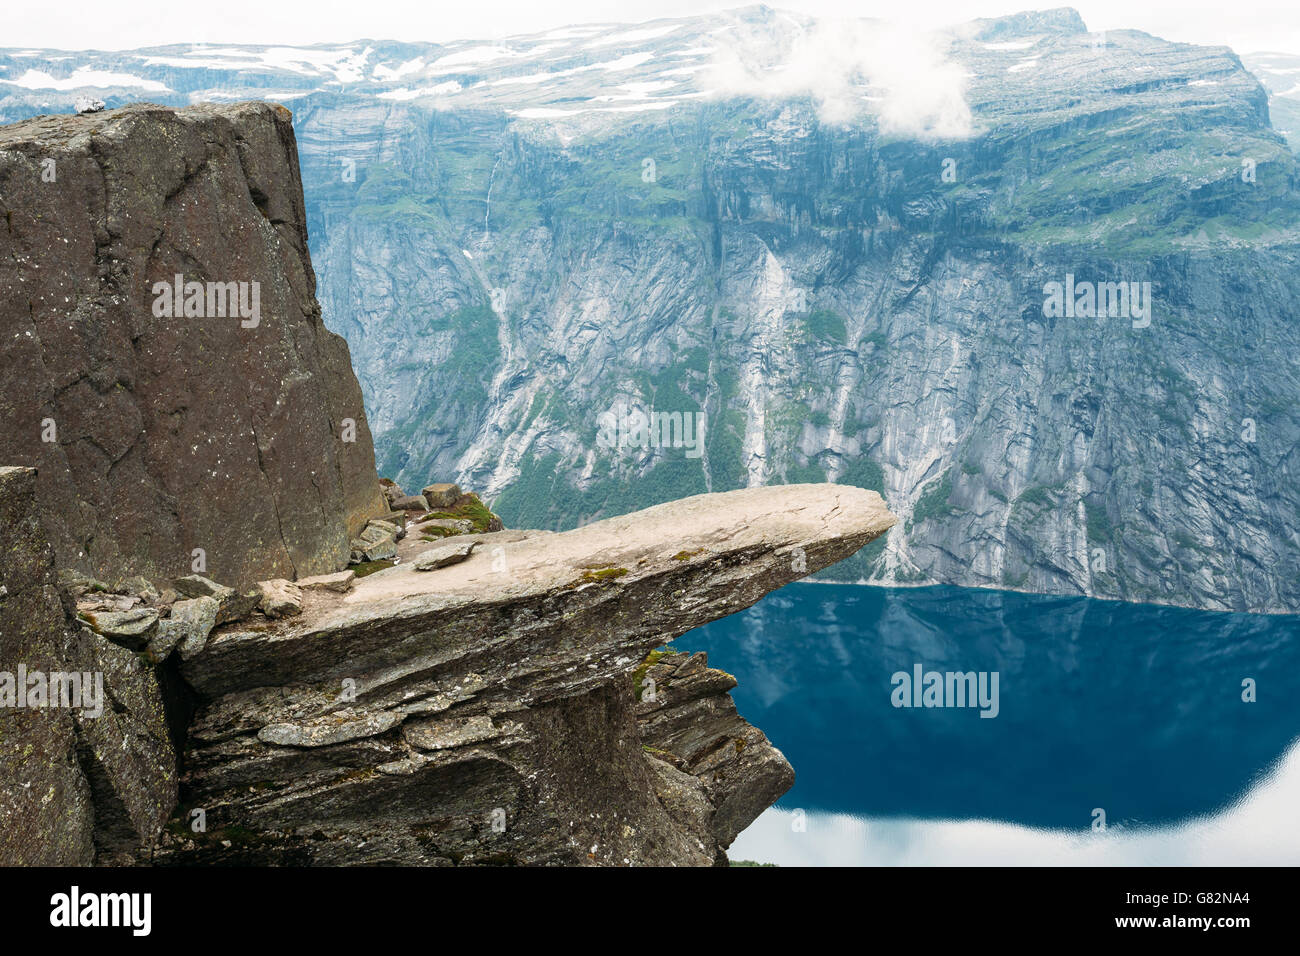 Scenic View Of Rock Trolltunga - Troll Tongue In Norway. Rock In The Mountains Of Norway. Natural Attractions Landmark - Stock Image